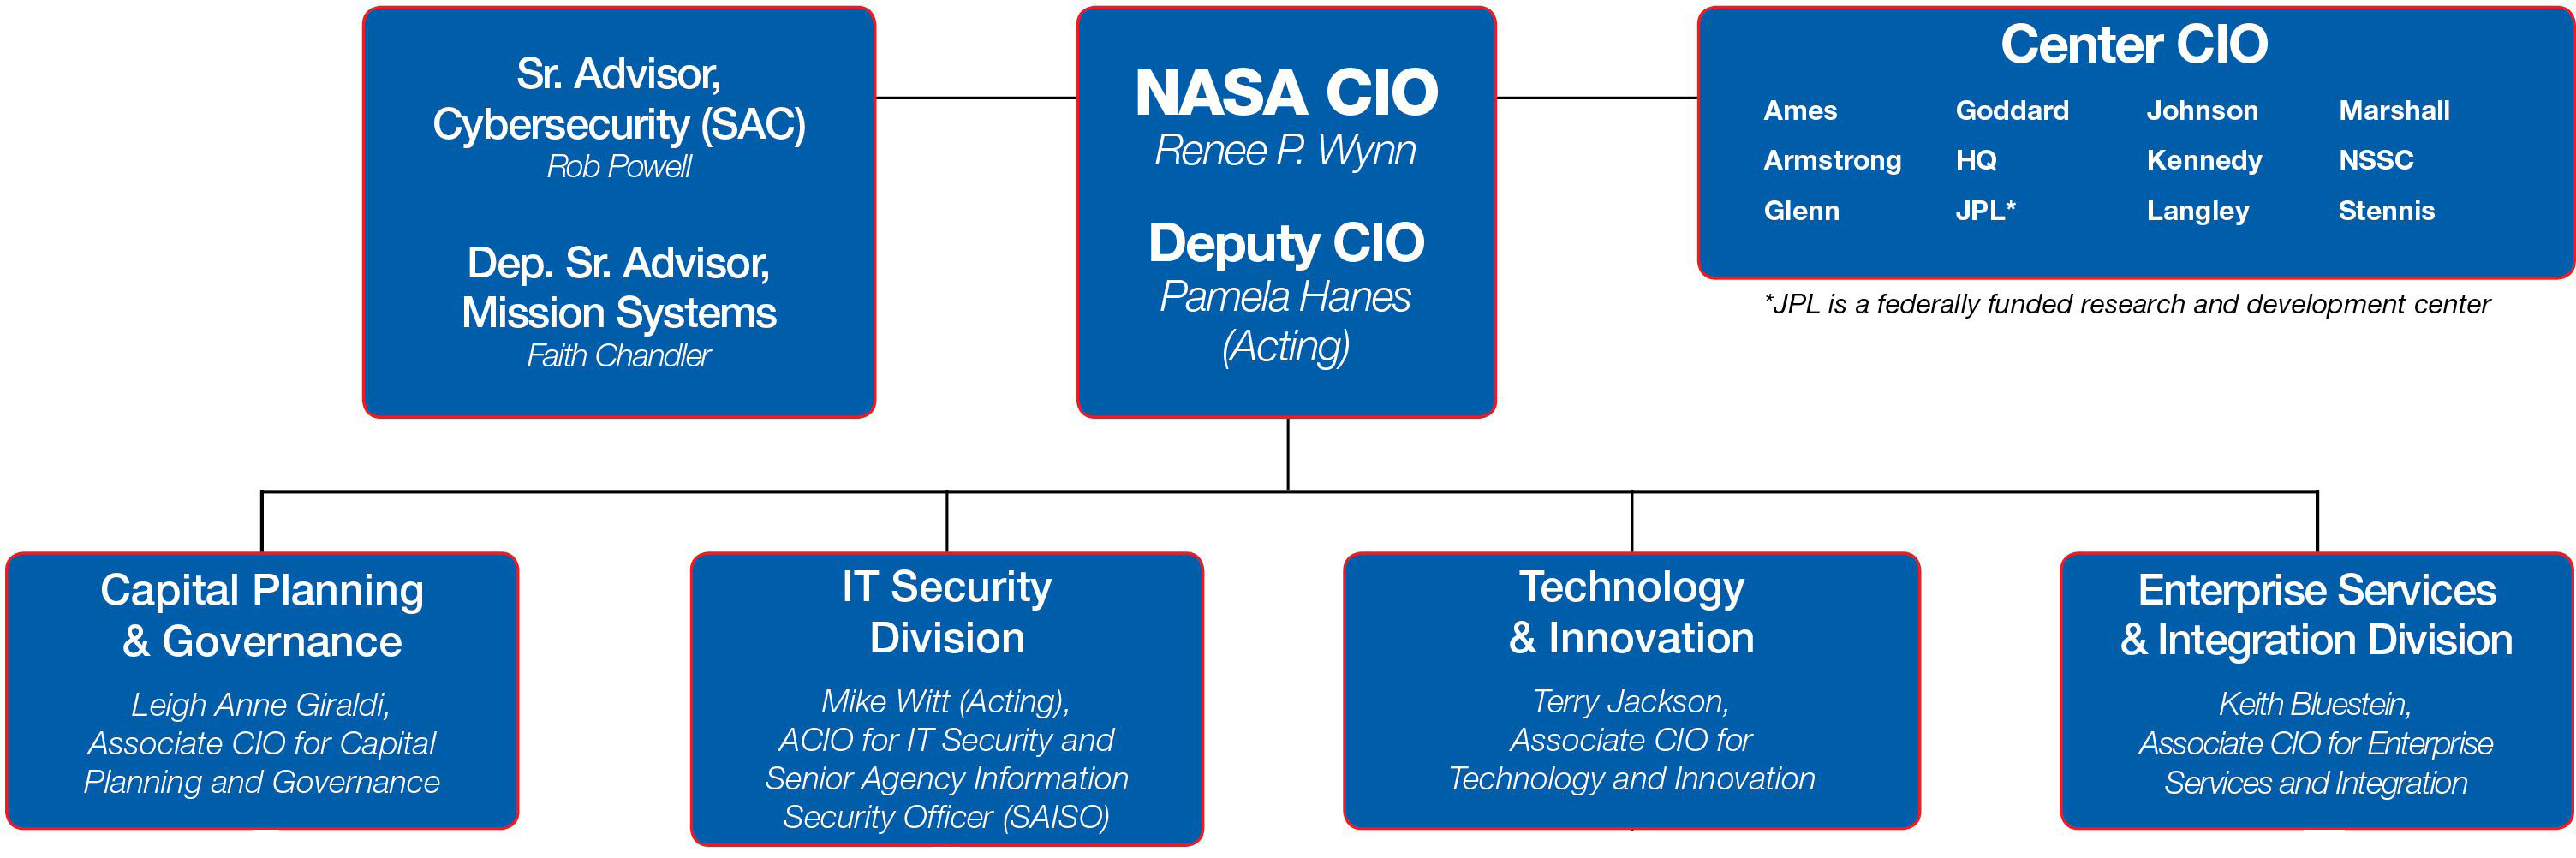 chief information officer essay Define the fundamental responsibilities and key characteristics of the chief information officer (cio) and chief technology officer (cto) within health care organizations.